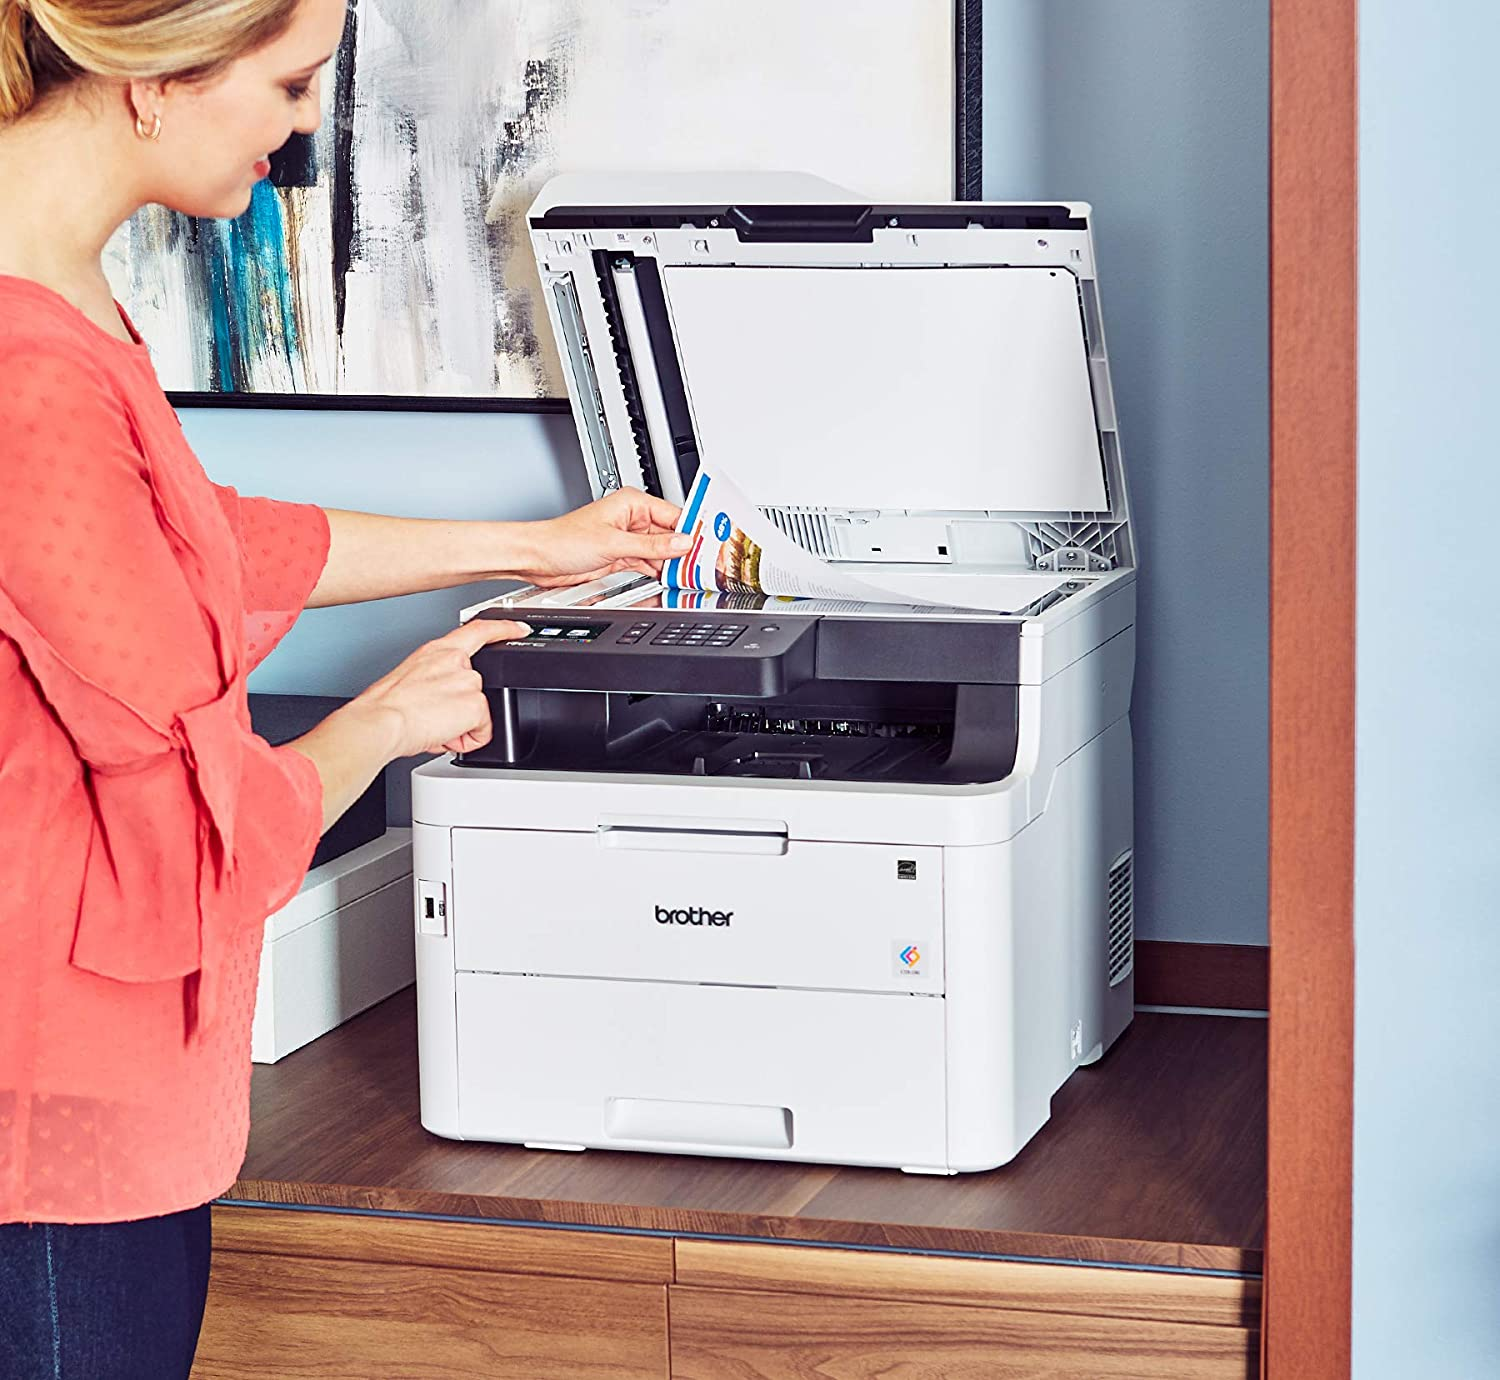 MFC-L3750CDW Digital Color All-in-One Printer, Laser Printer Quality, Wireless Printing, Duplex Printing, Amazon Dash Replenishment Enabled